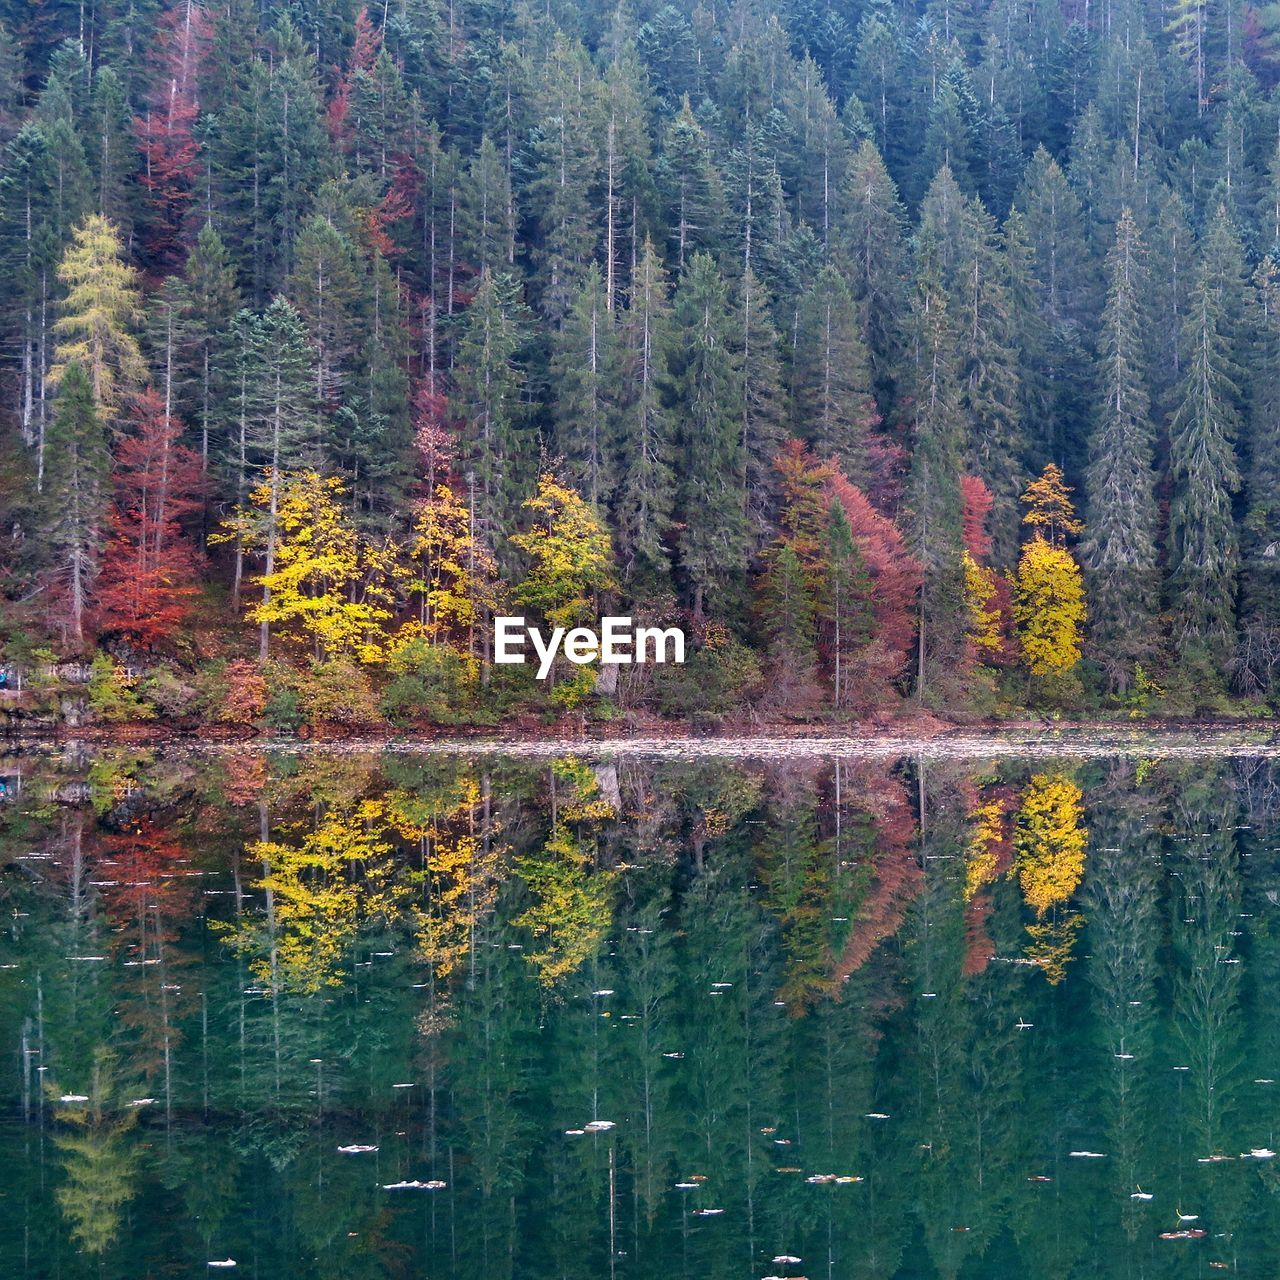 reflection, tree, water, lake, plant, forest, nature, land, beauty in nature, scenics - nature, no people, environment, autumn, coniferous tree, day, tranquil scene, landscape, pine tree, waterfront, outdoors, evergreen tree, pine woodland, change